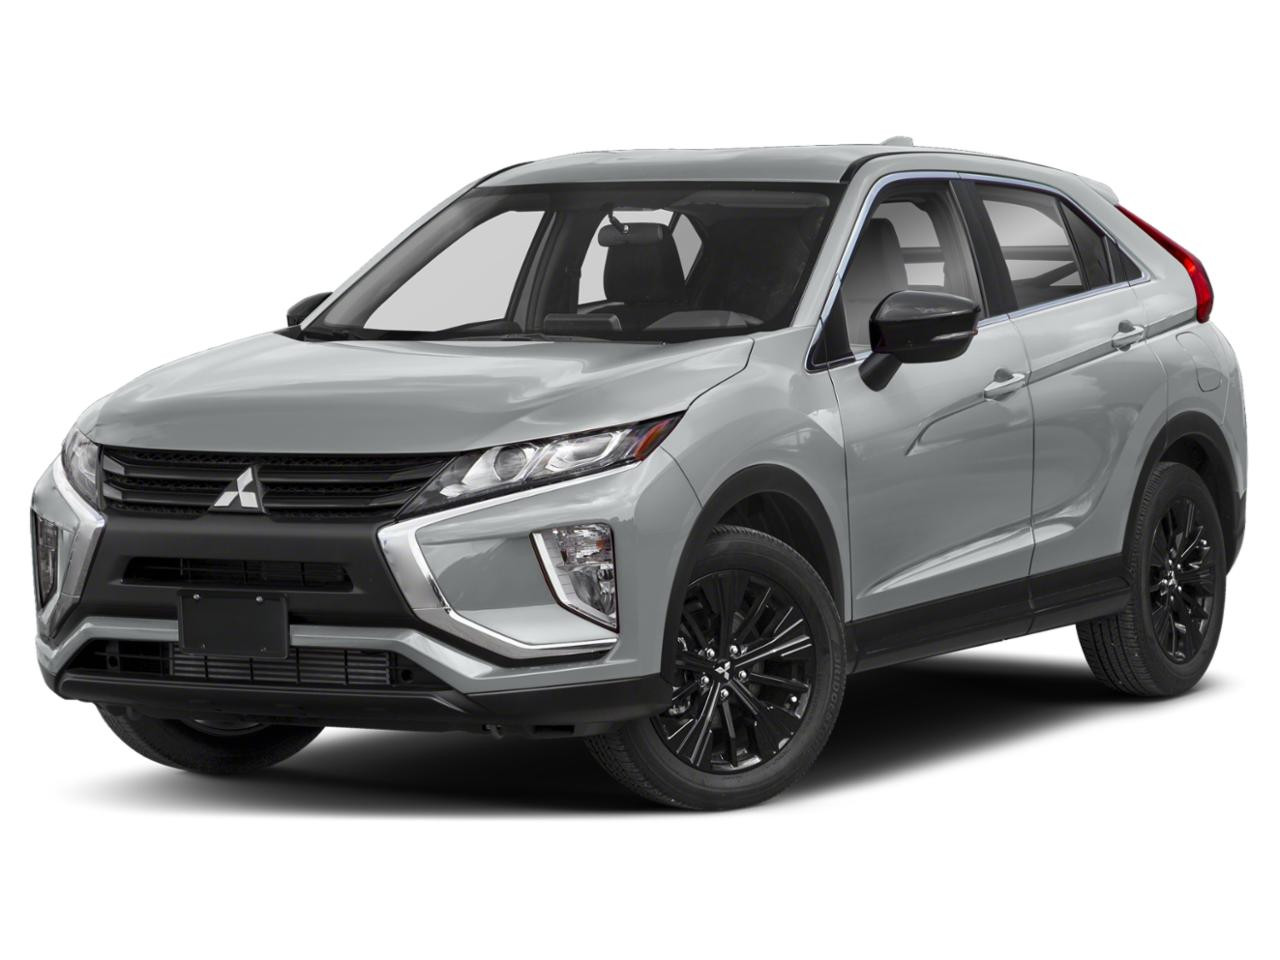 2018 Mitsubishi Eclipse Cross Vehicle Photo in New Castle, DE 19720